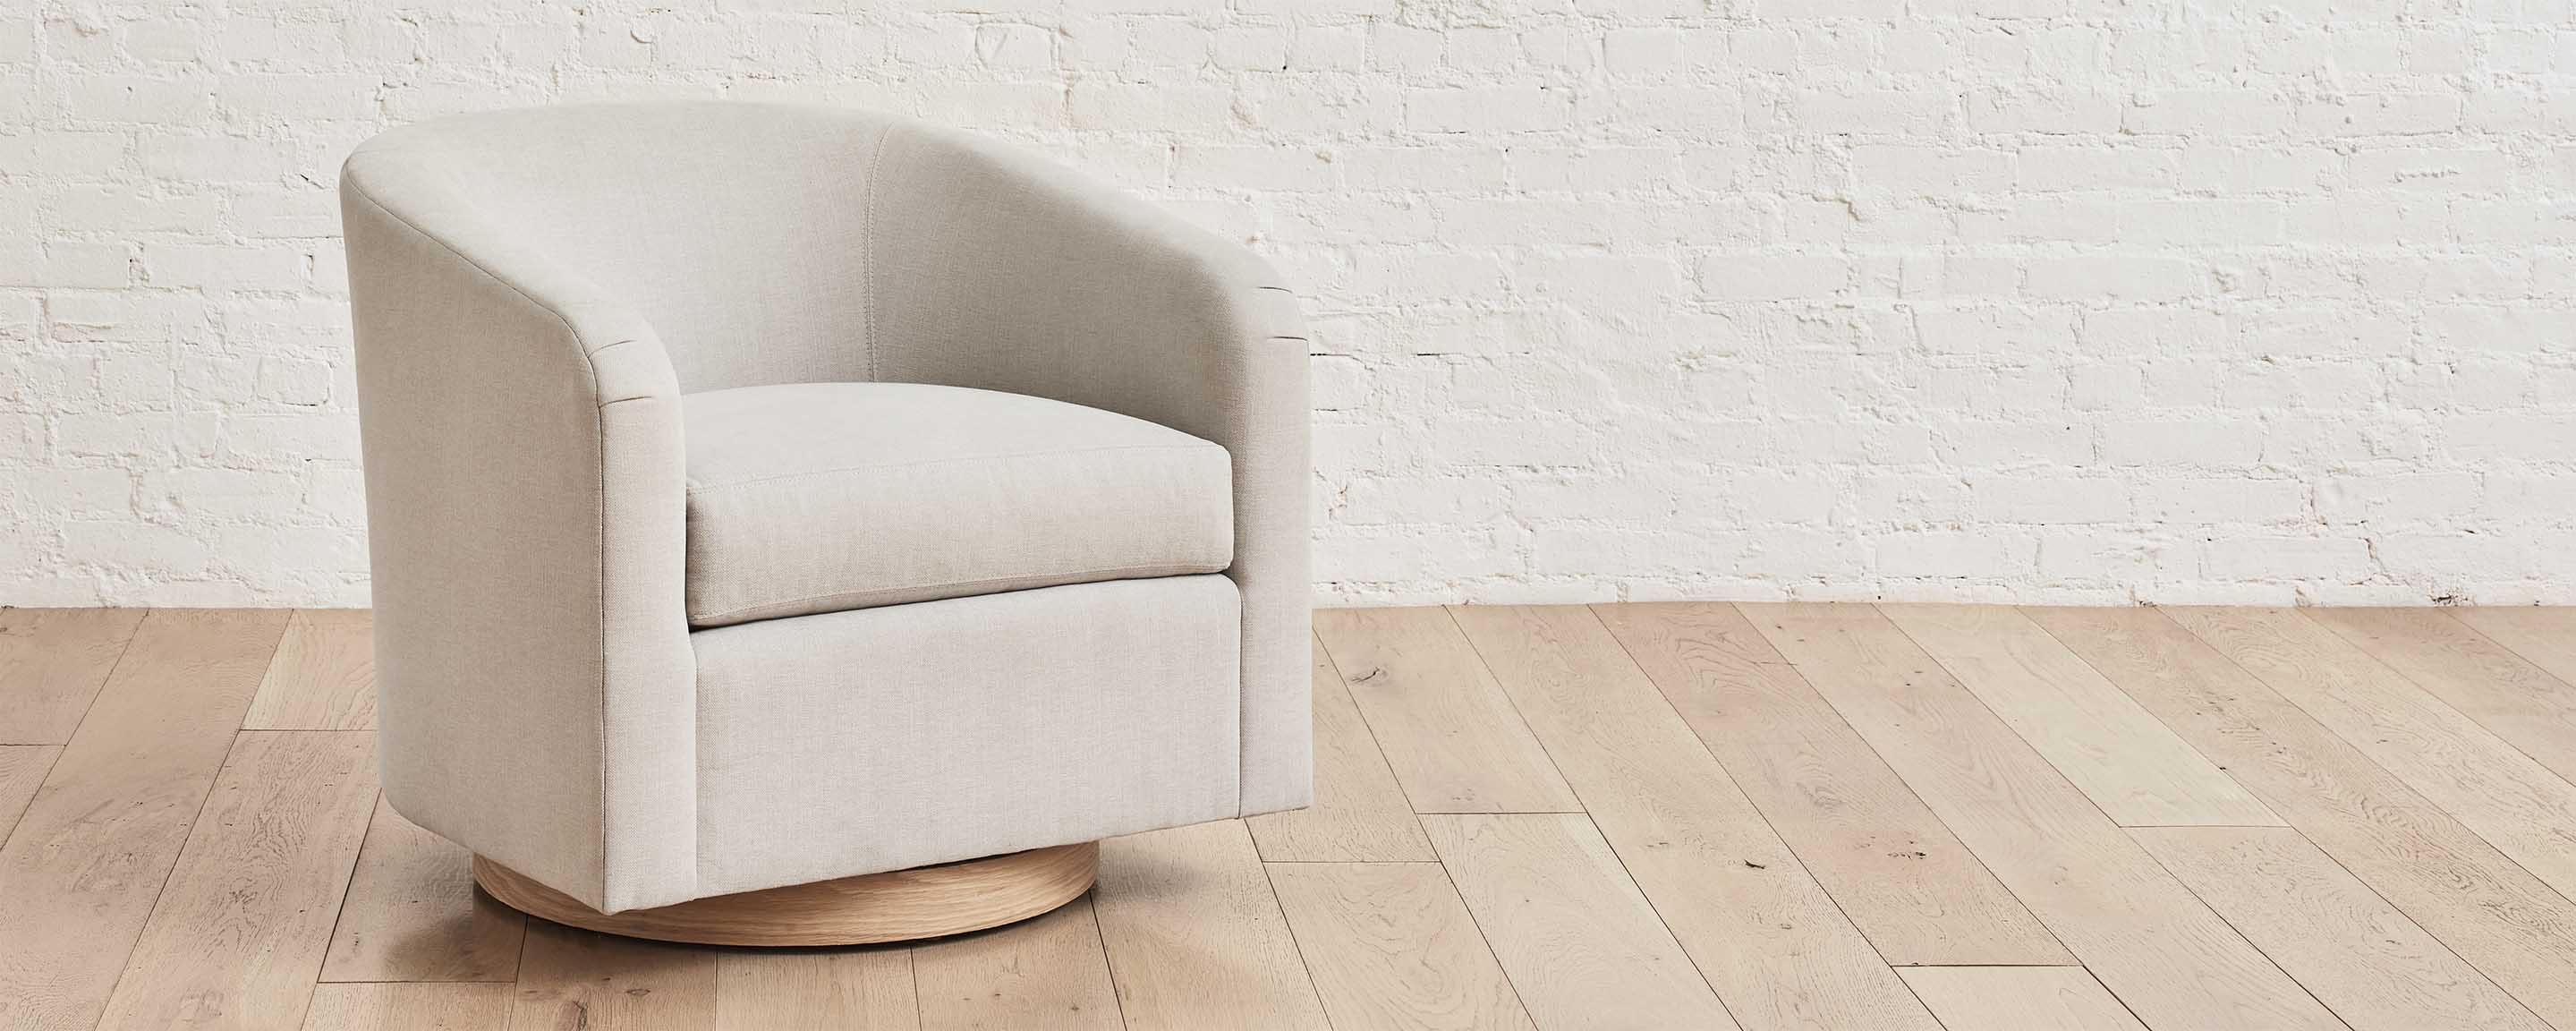 the homenature cooper swivel chair